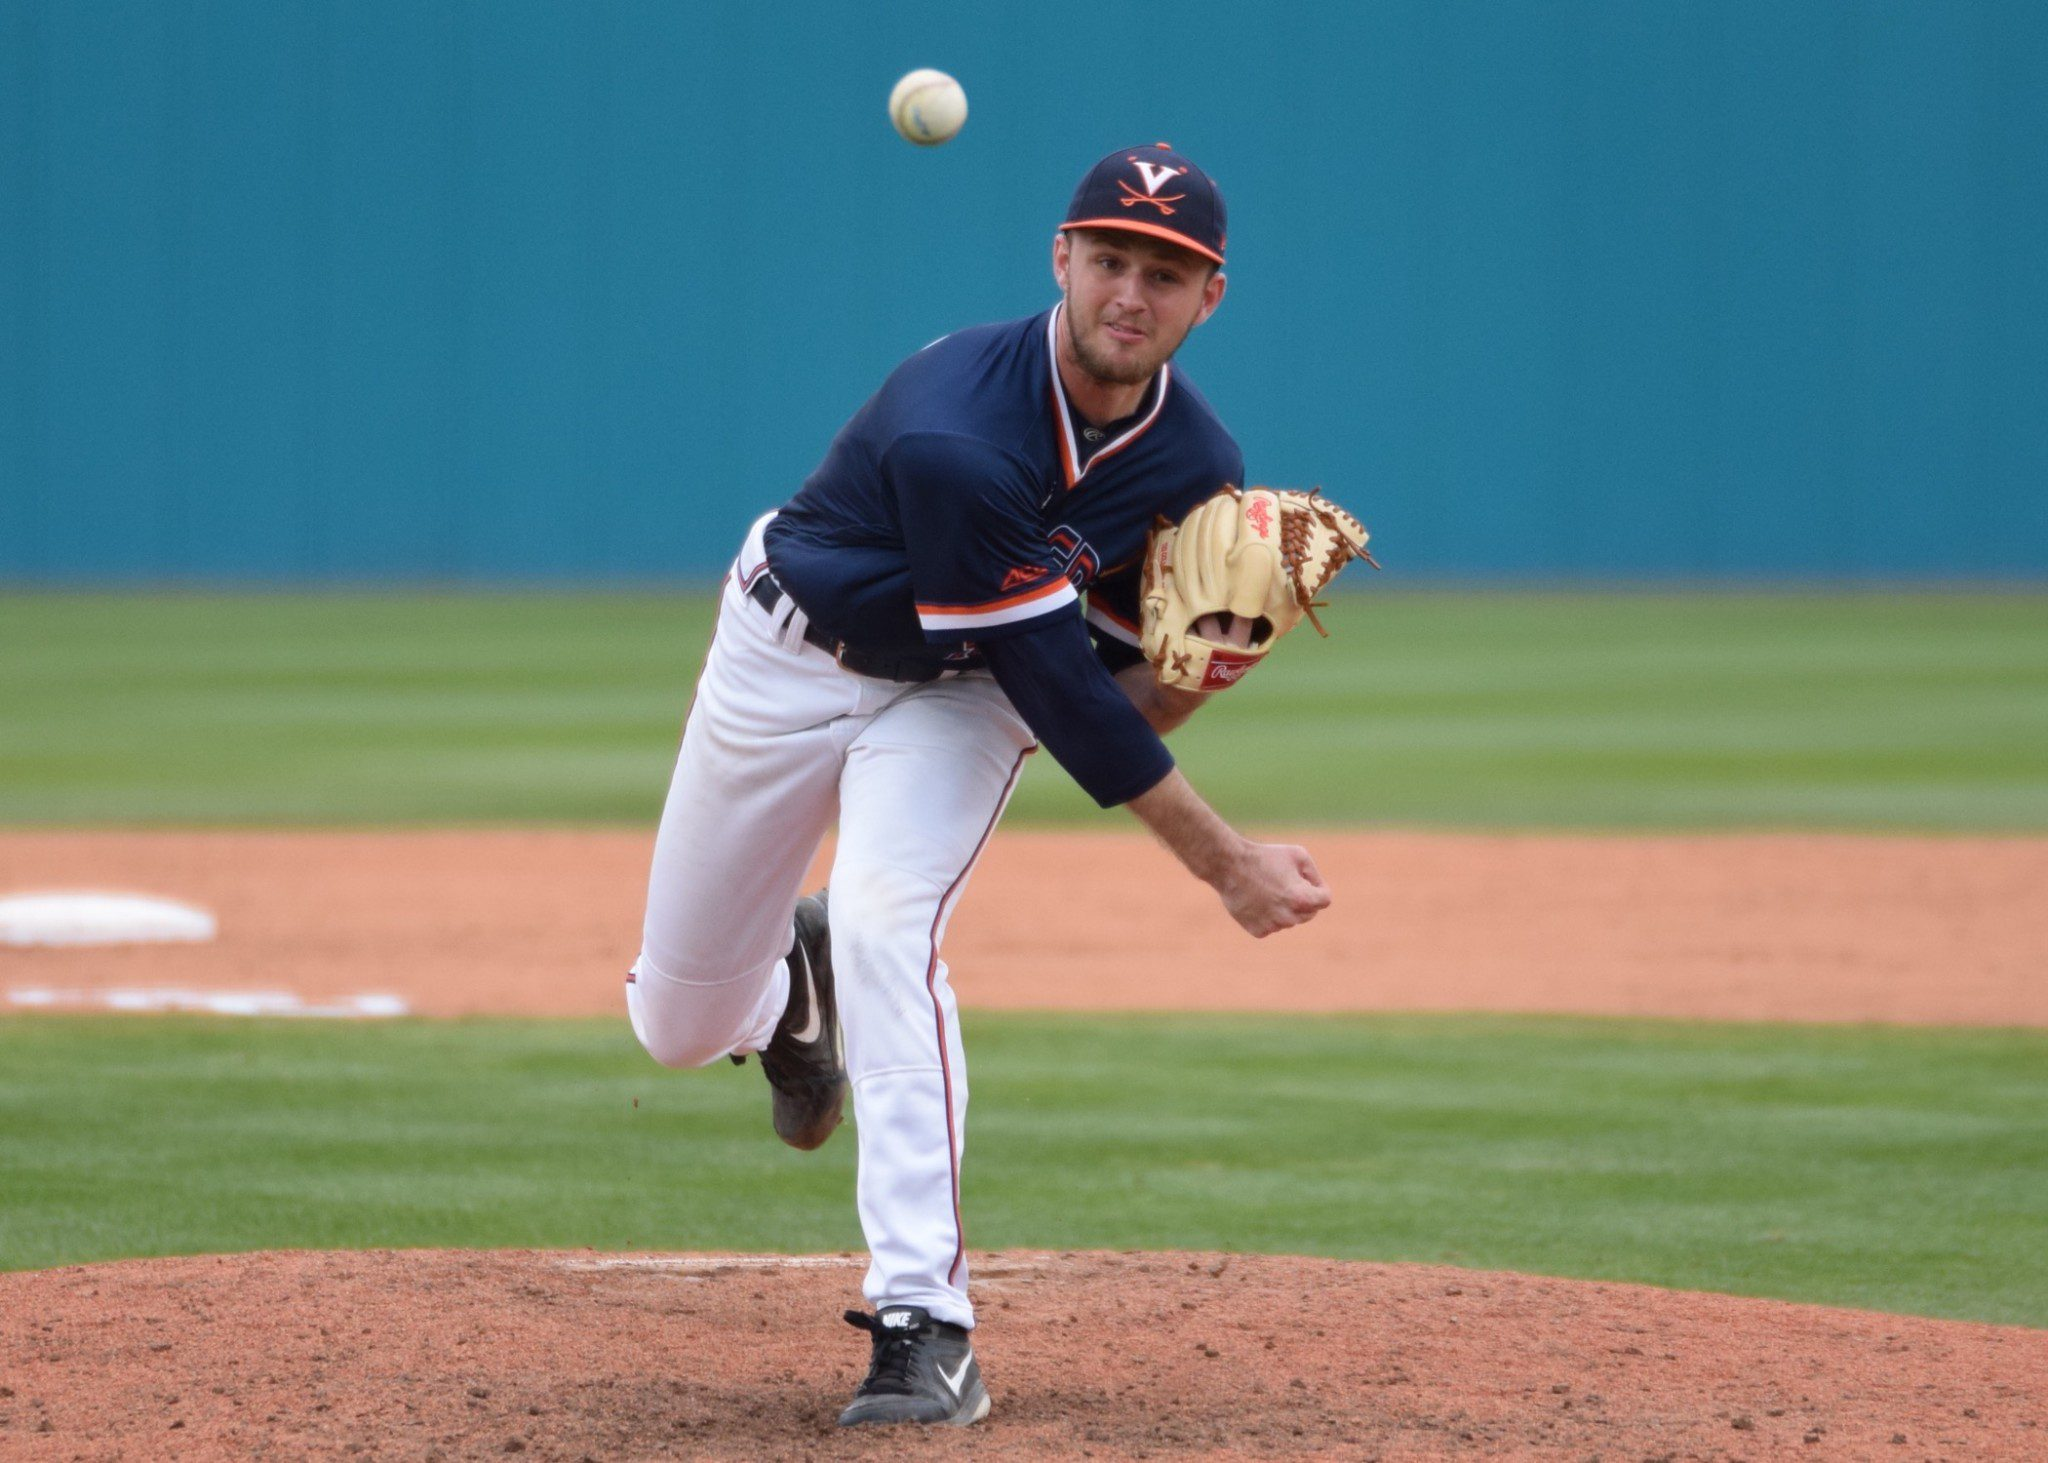 Brian O'Connor hopes Alec Bettinger finishes the season strong in the rotation. (Aaron Fitt)